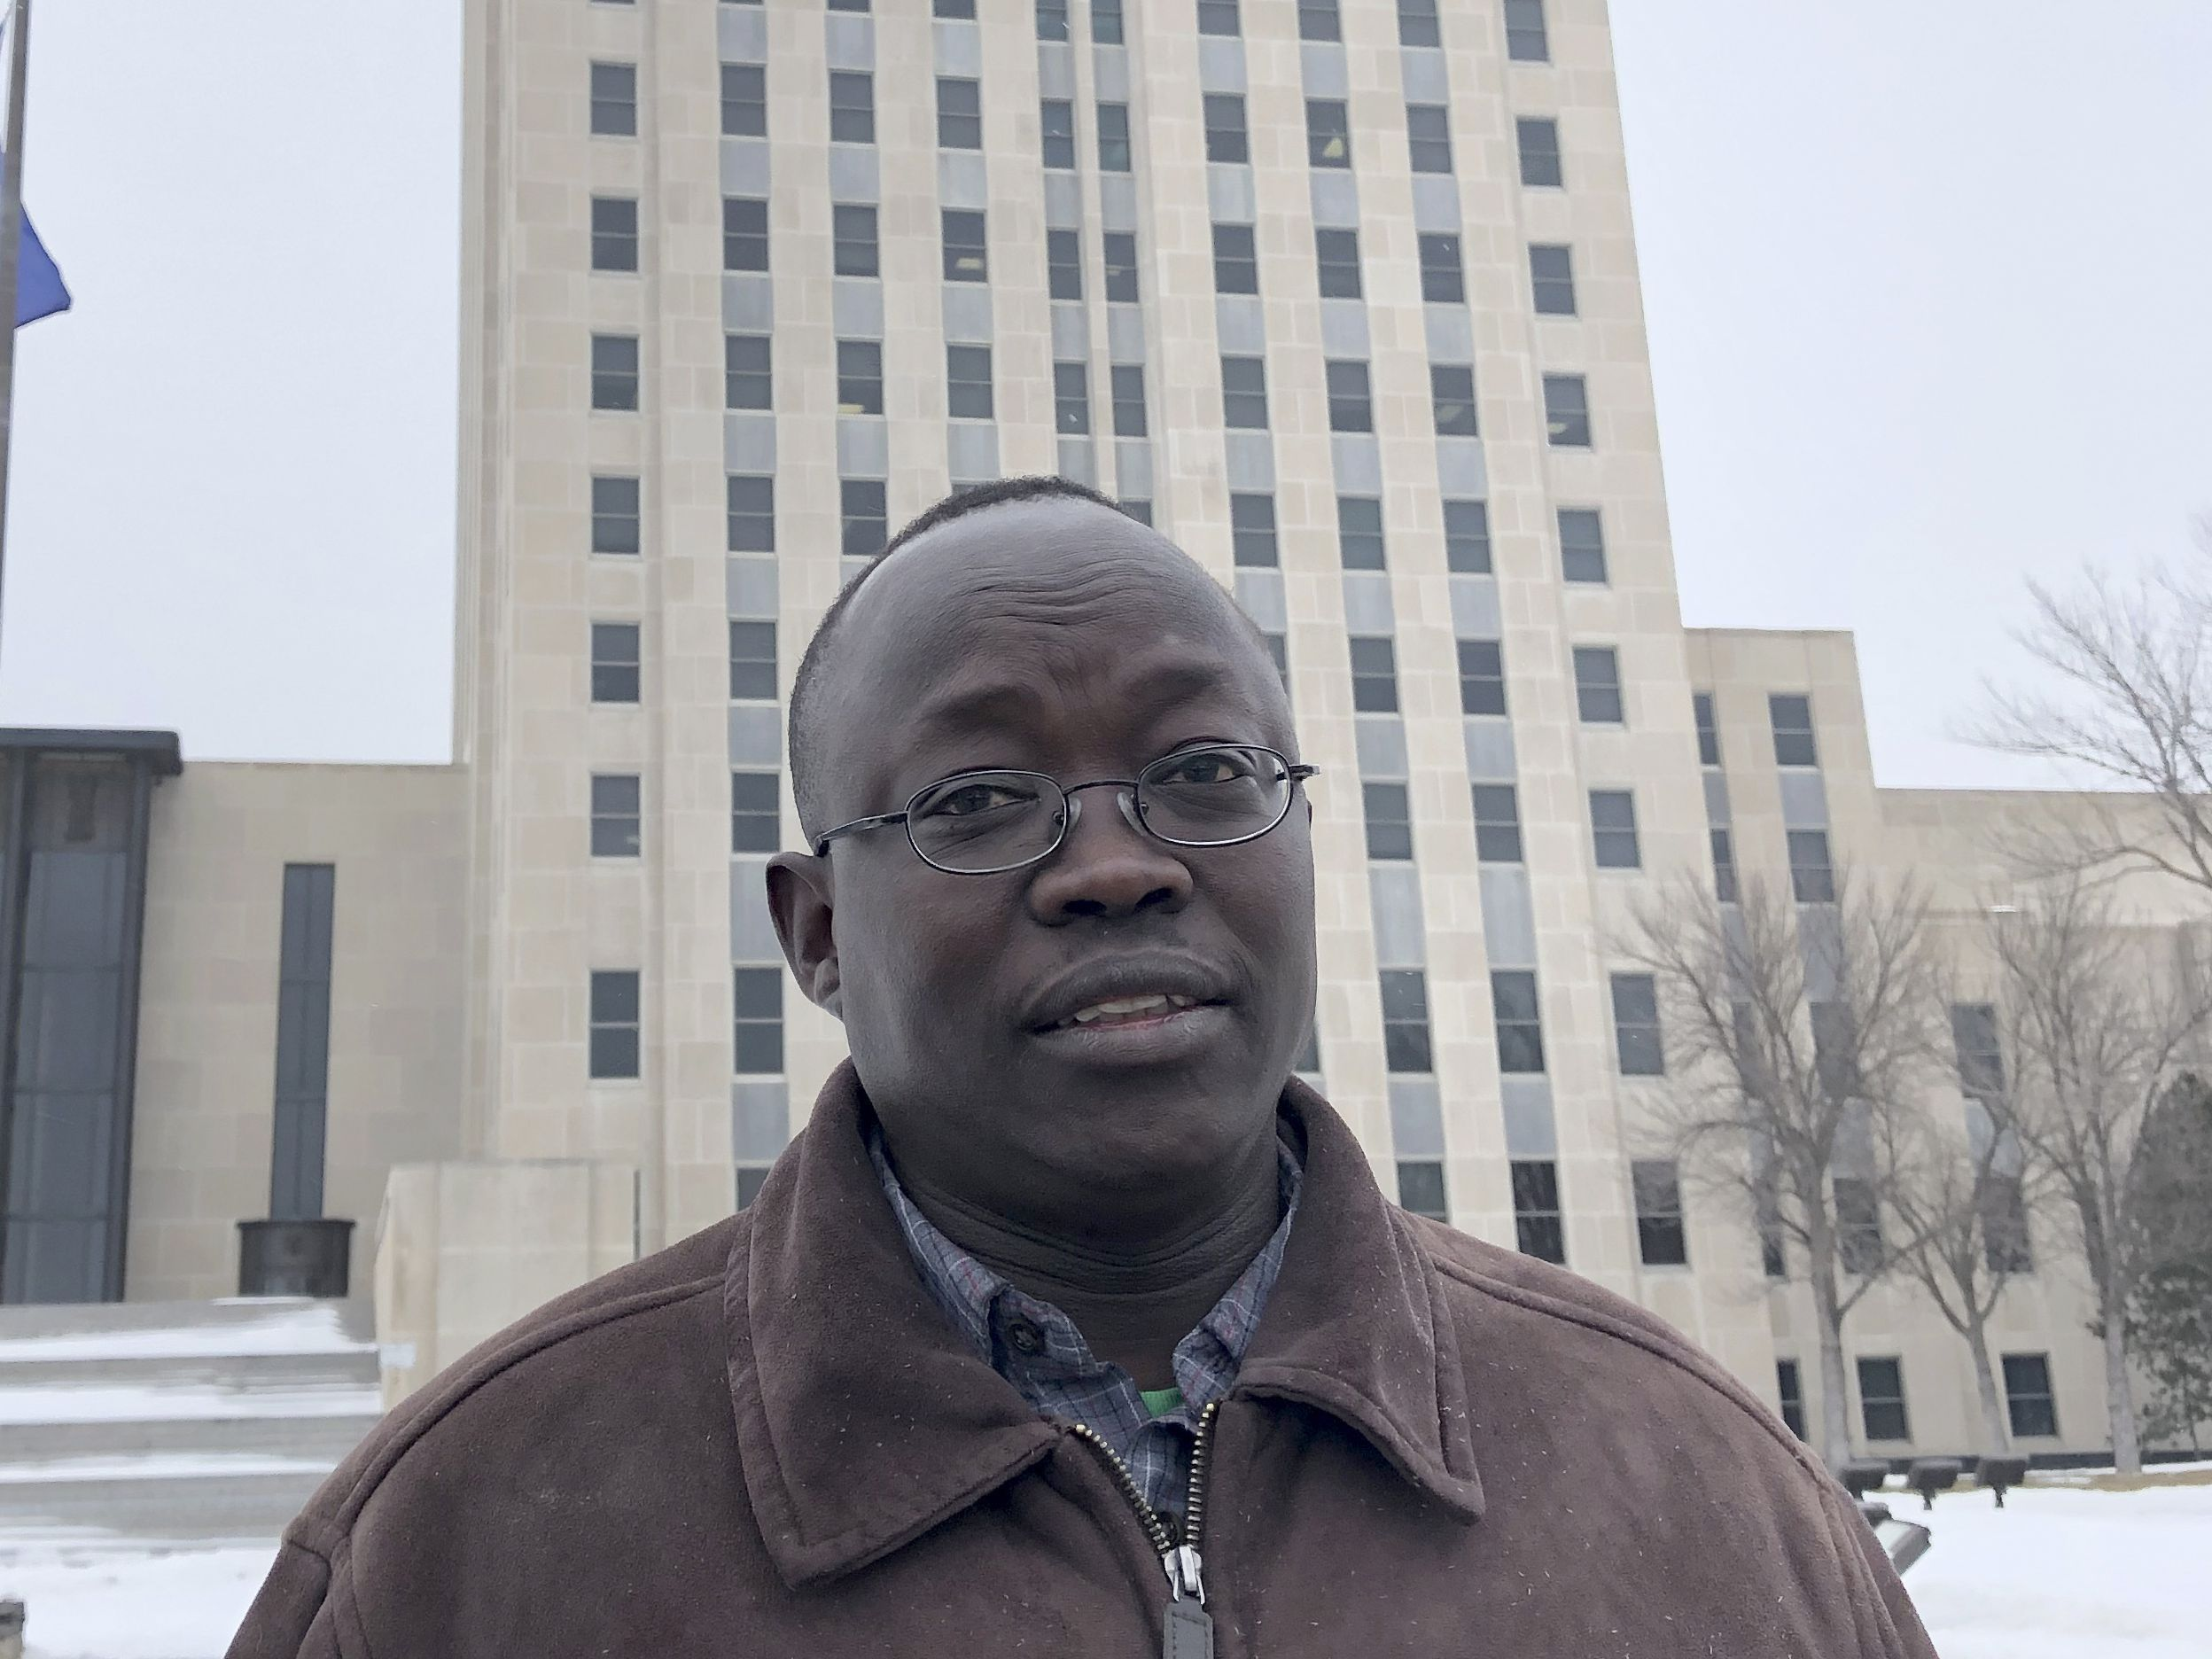 North Dakota county may become US's 1st to bar new refugees